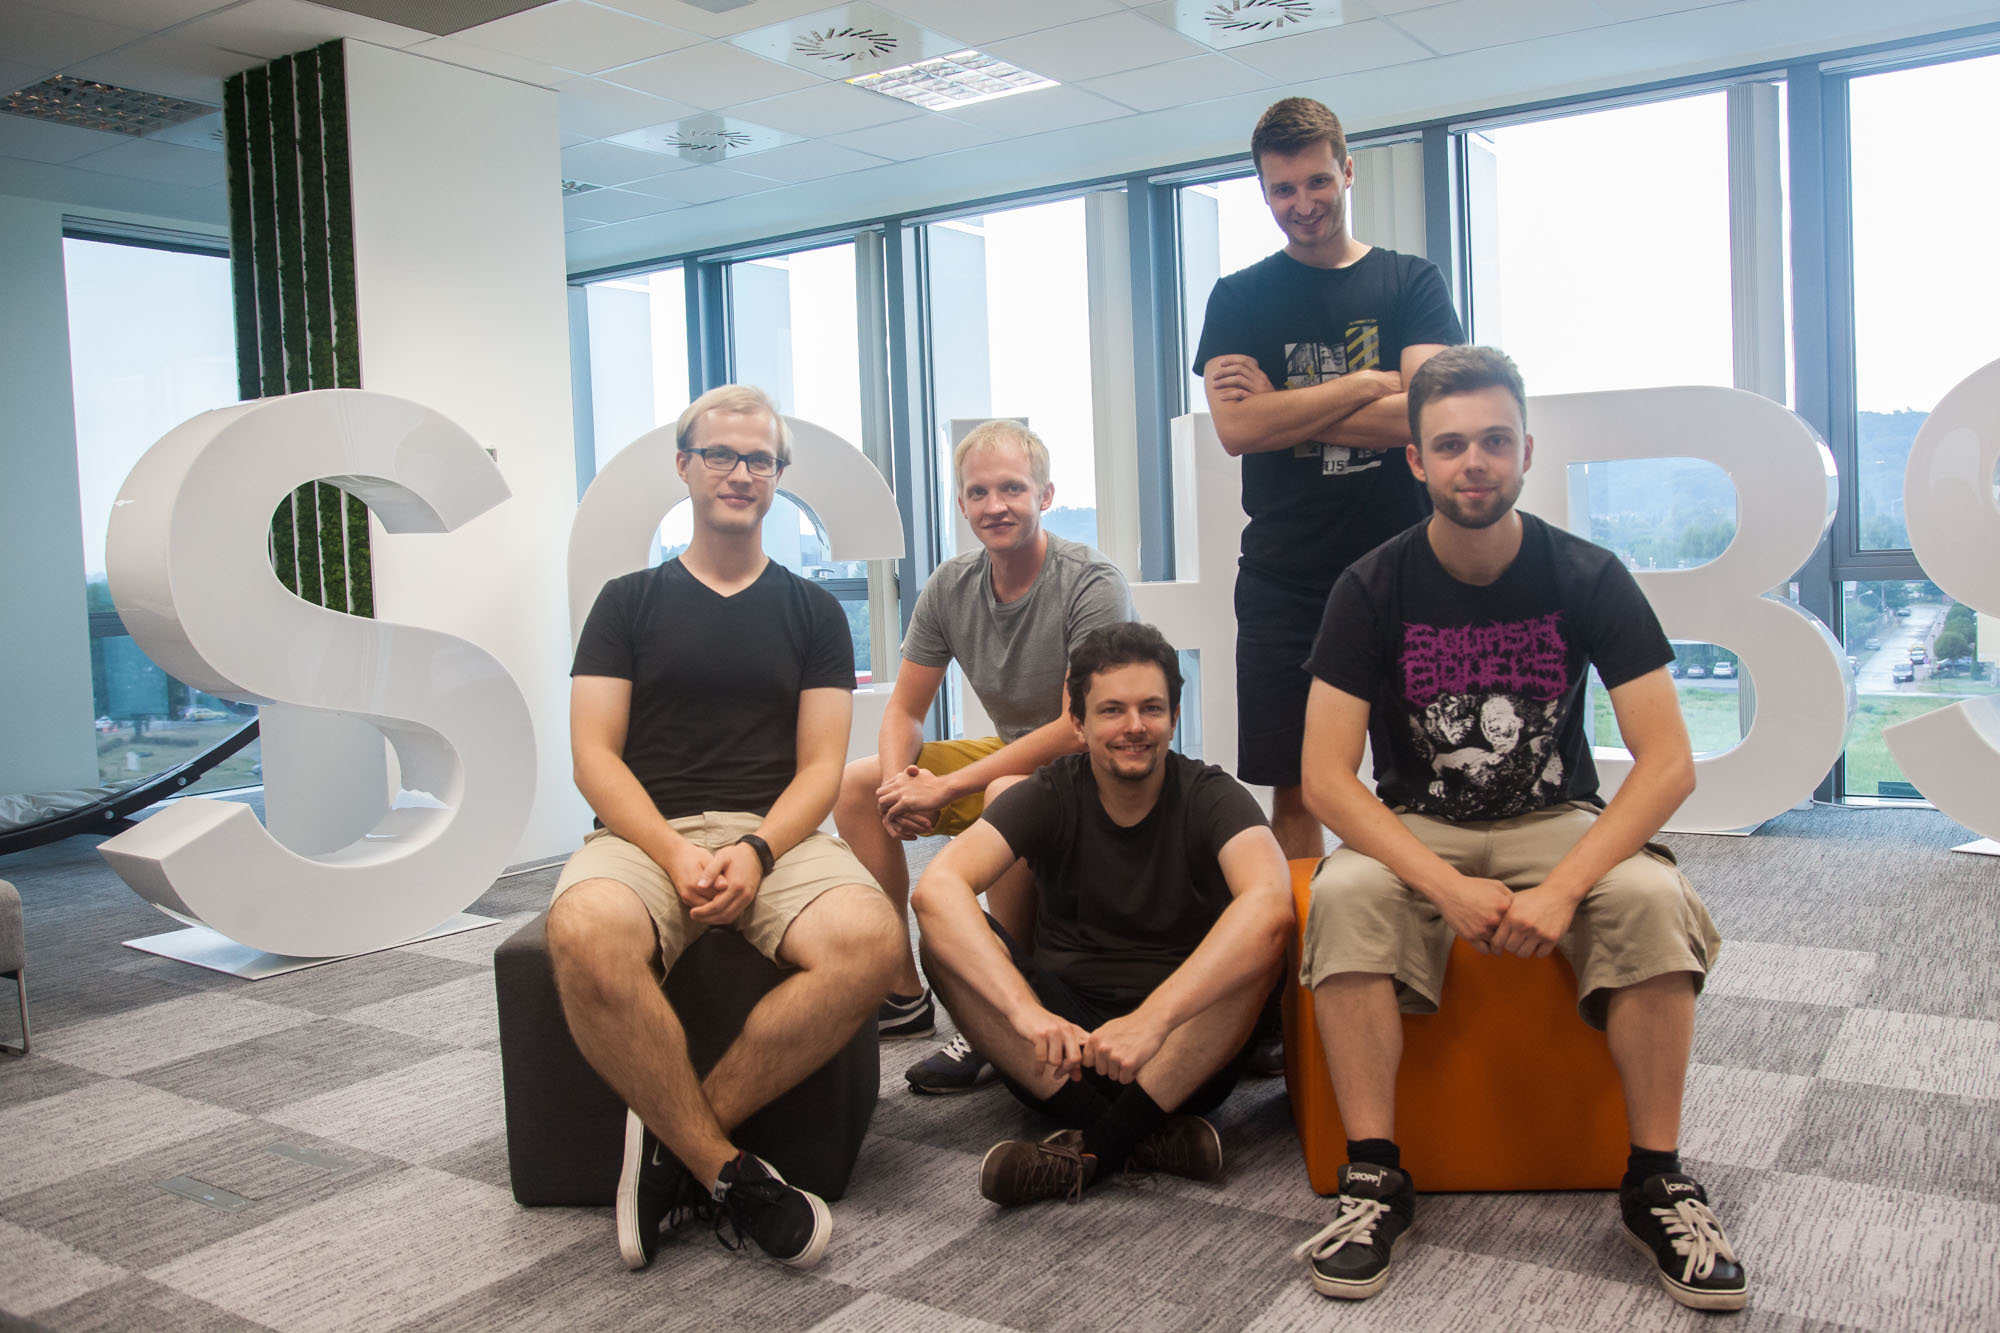 The Editorial Mobile team. From the left: Patryk Konior, Mirosław Kucharczyk, Jakub Wasilewski, Mateusz Kwasniewski and Krystian Jarmicki